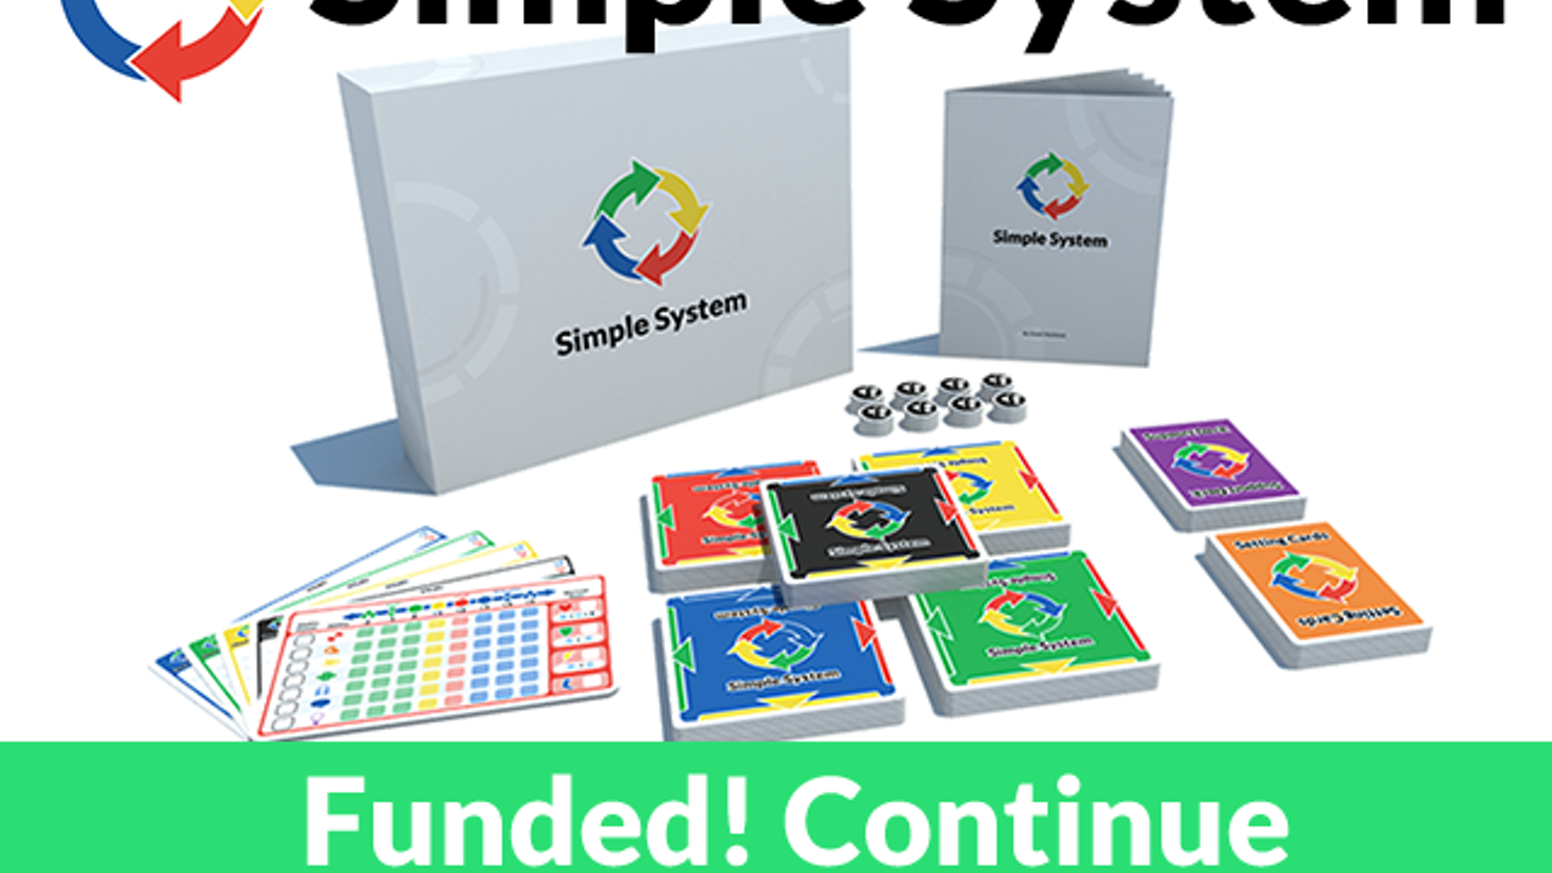 Simple System Table-Top Roleplaying Game System by Dashing